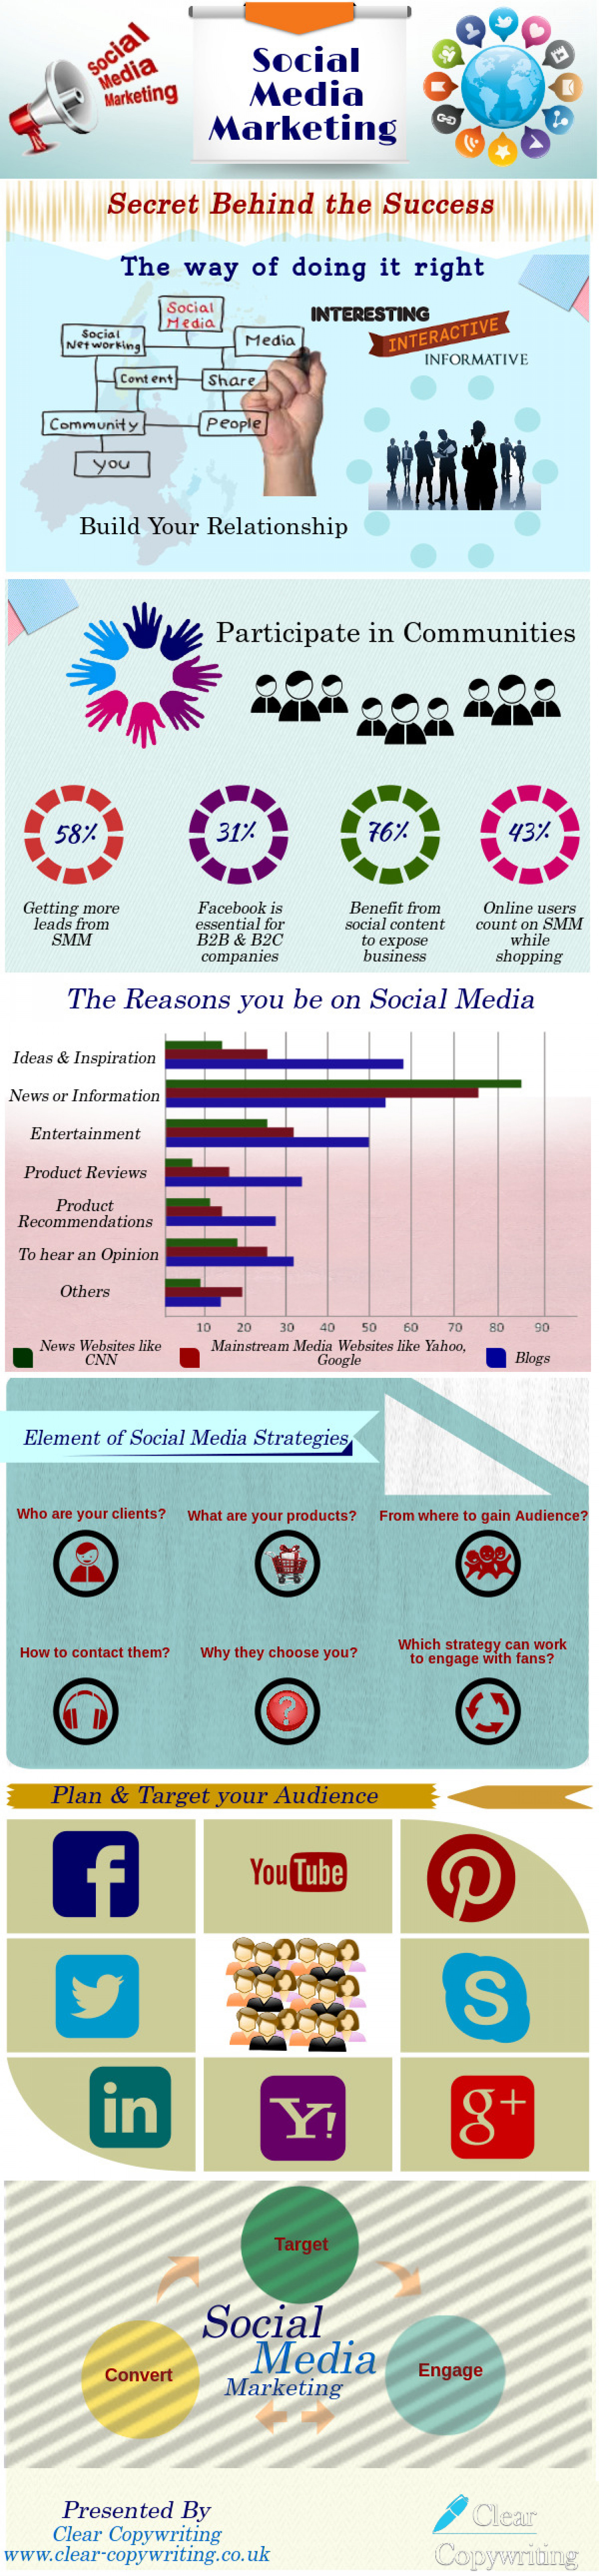 Social Media Marketing - Secret of online Success Infographic